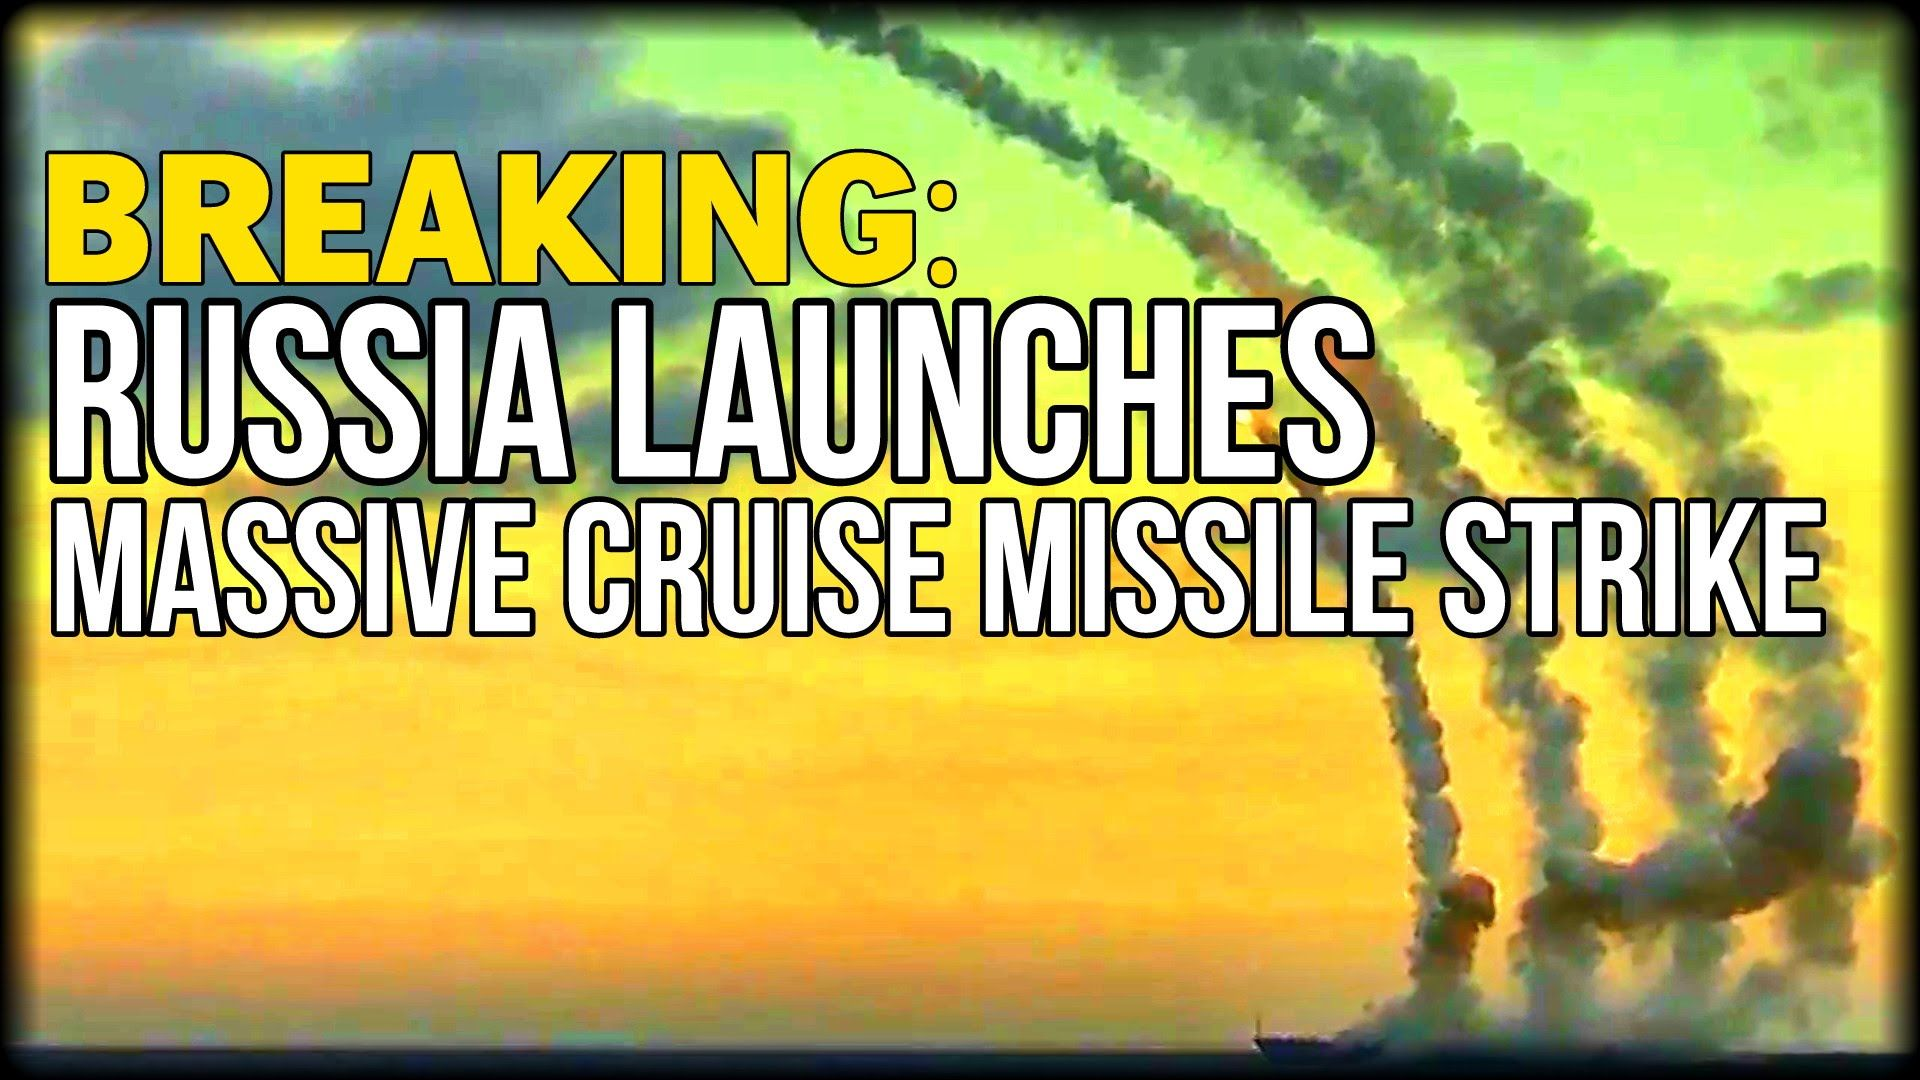 BREAKING: RUSSIA LAUNCHES MASSIVE CRUISE MISSILE STRIKE AGAINST SYRIAN T...